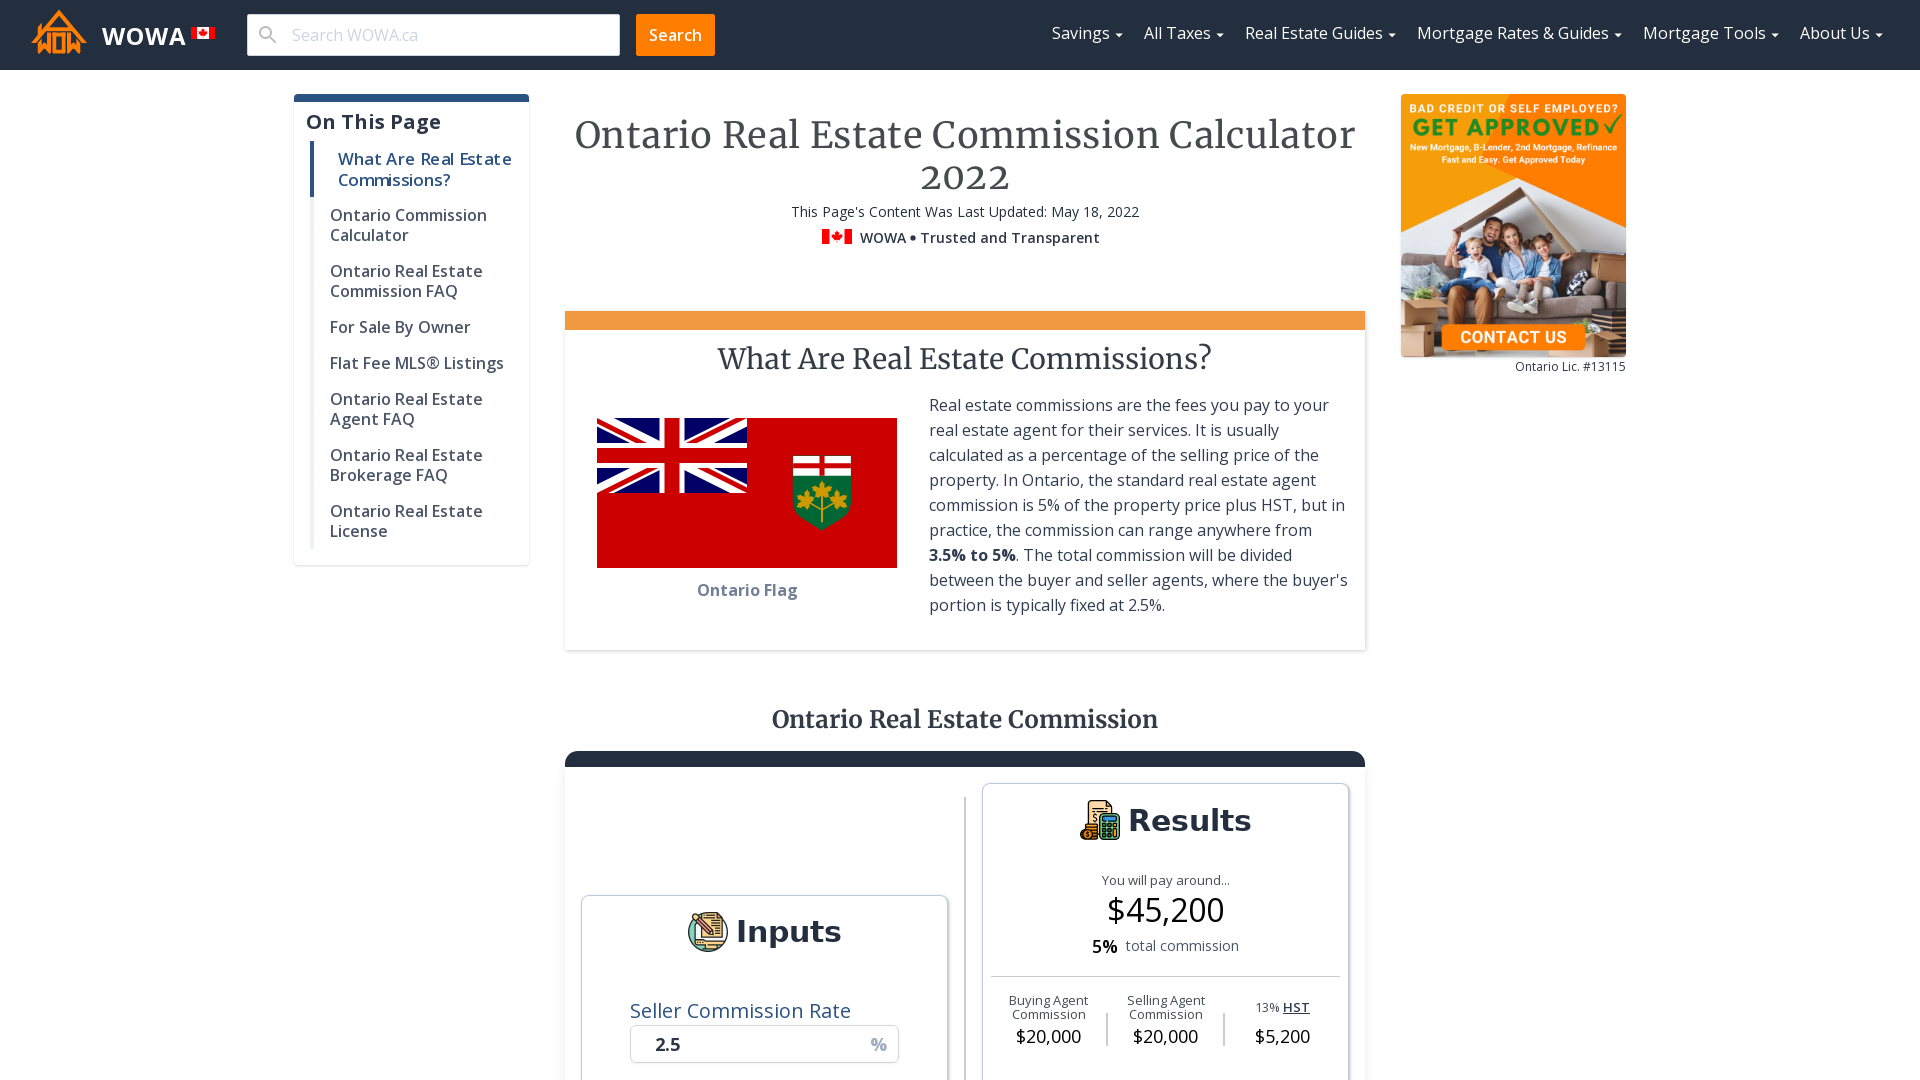 Ontario Real Estate Commission Calculator | WOWA.ca